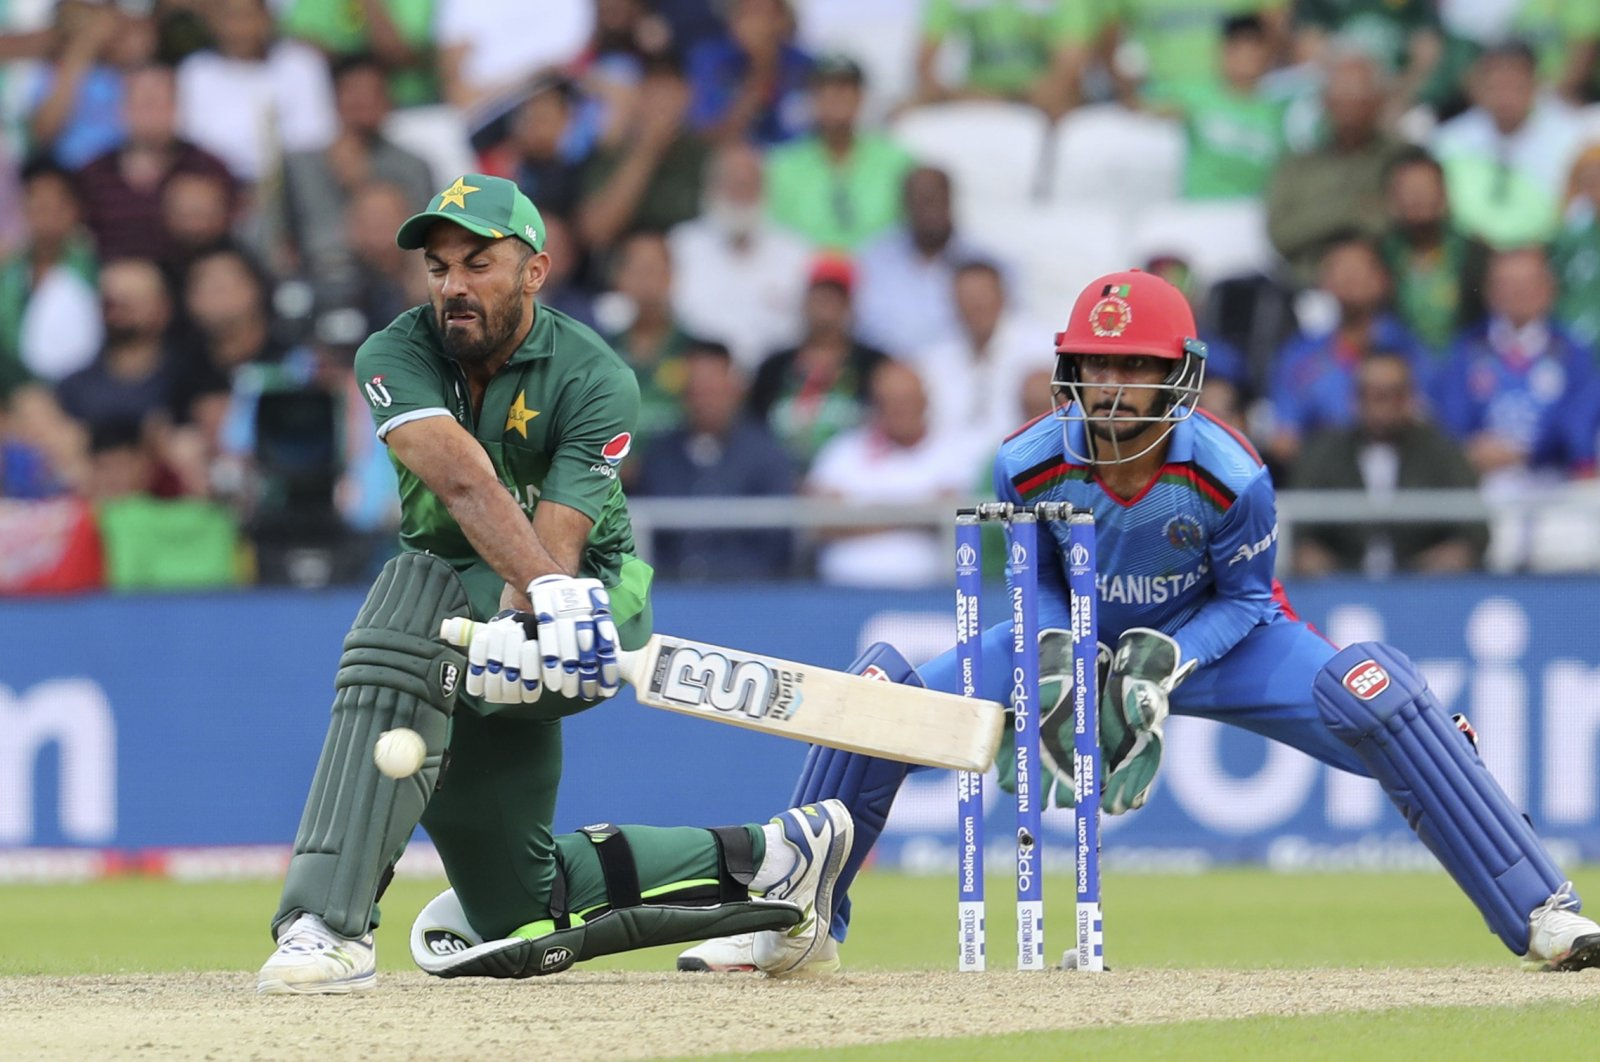 Pakistan's Wahab Riaz bats during a Cricket World Cup match against Afghanistan at Headingley in Leeds, England, June 29, 2019. (AP Photo)